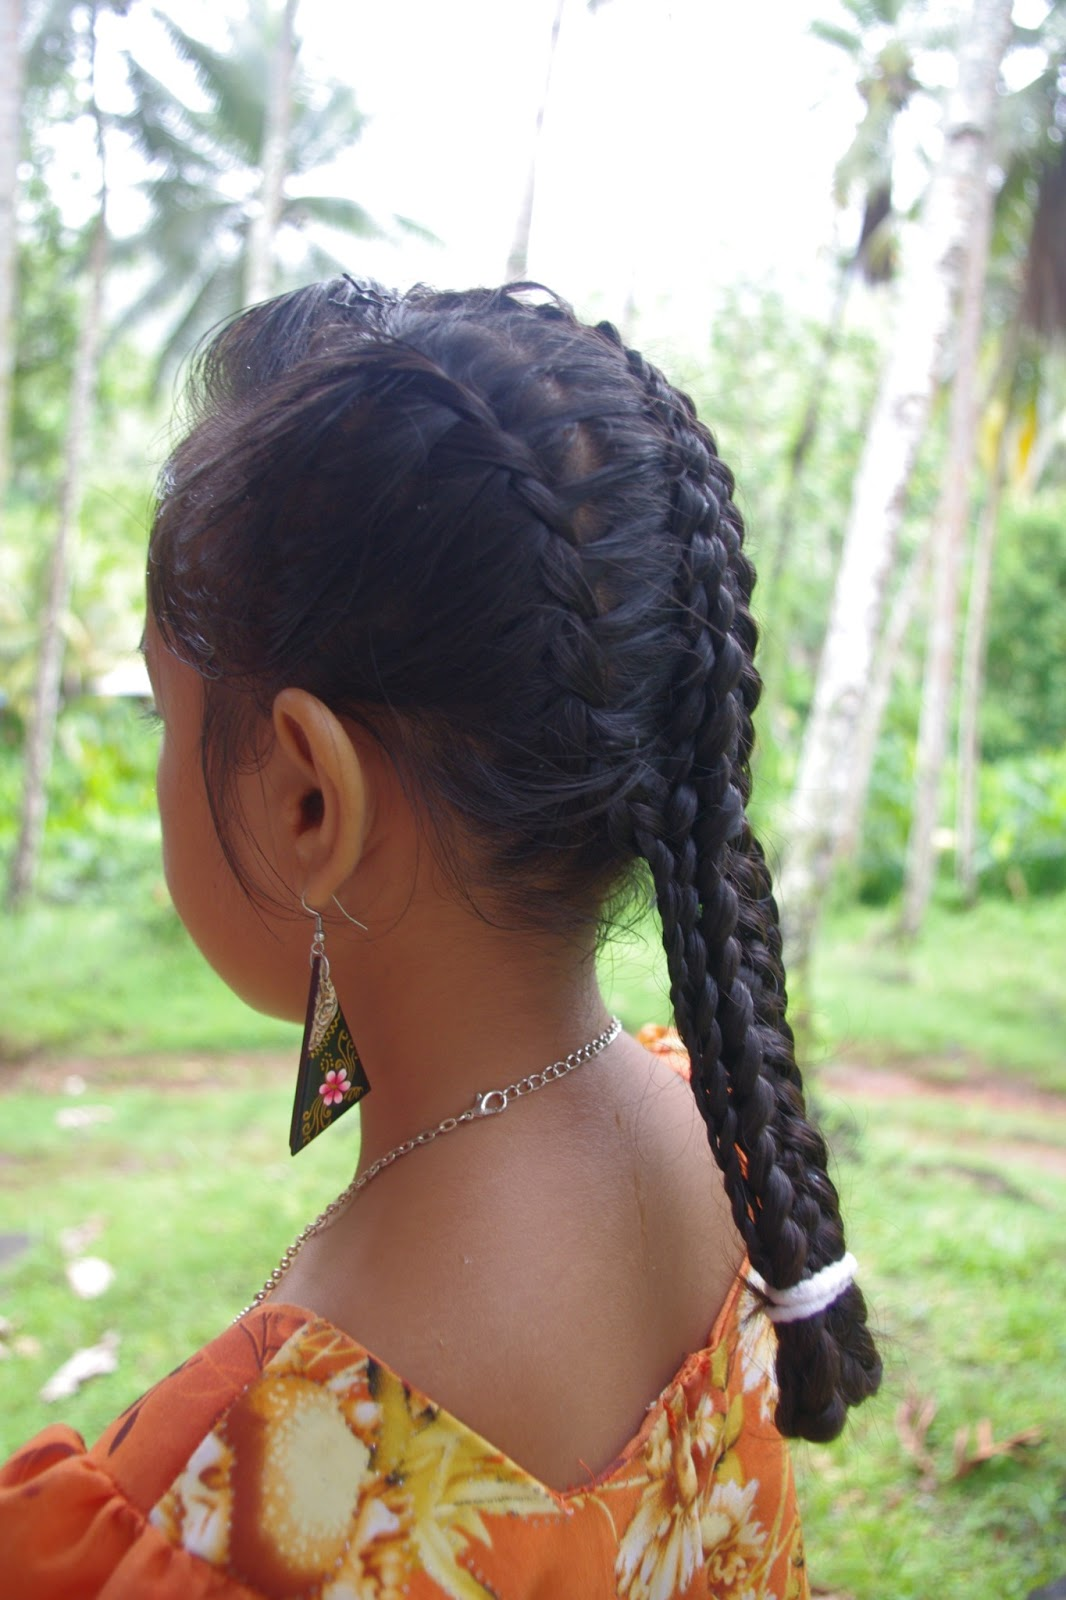 Micronesian Girl Basket Weave French Braids Hairstyle Center